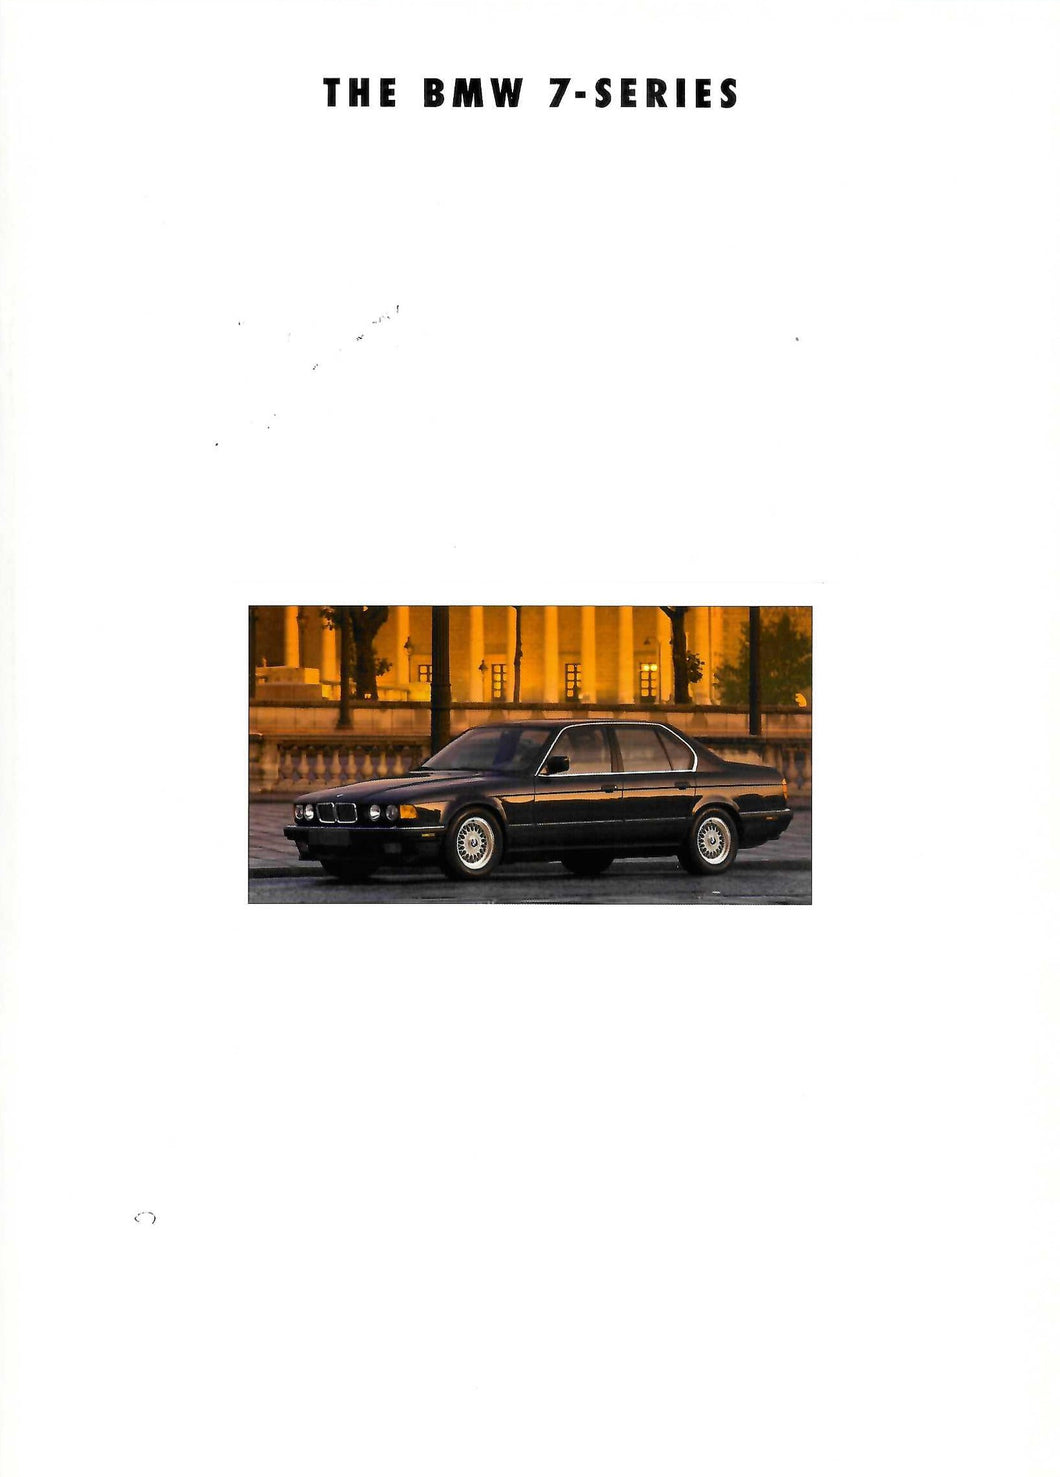 Brochure - THE BMW 7-Series (1994)